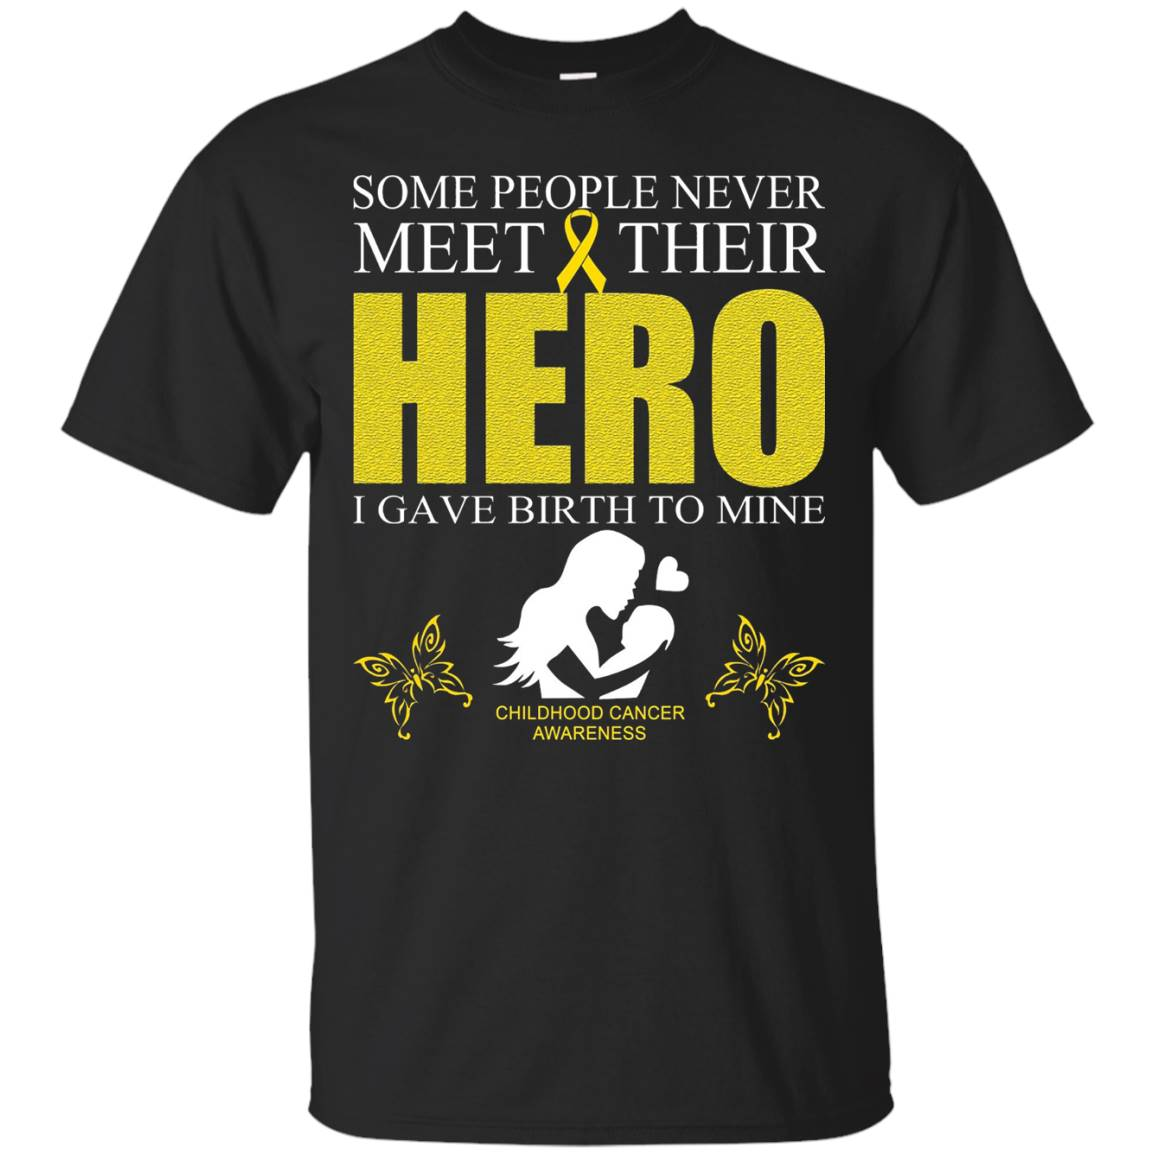 Childhood Cancer Awareness – I Gave Birth to My Hero T-Shirt